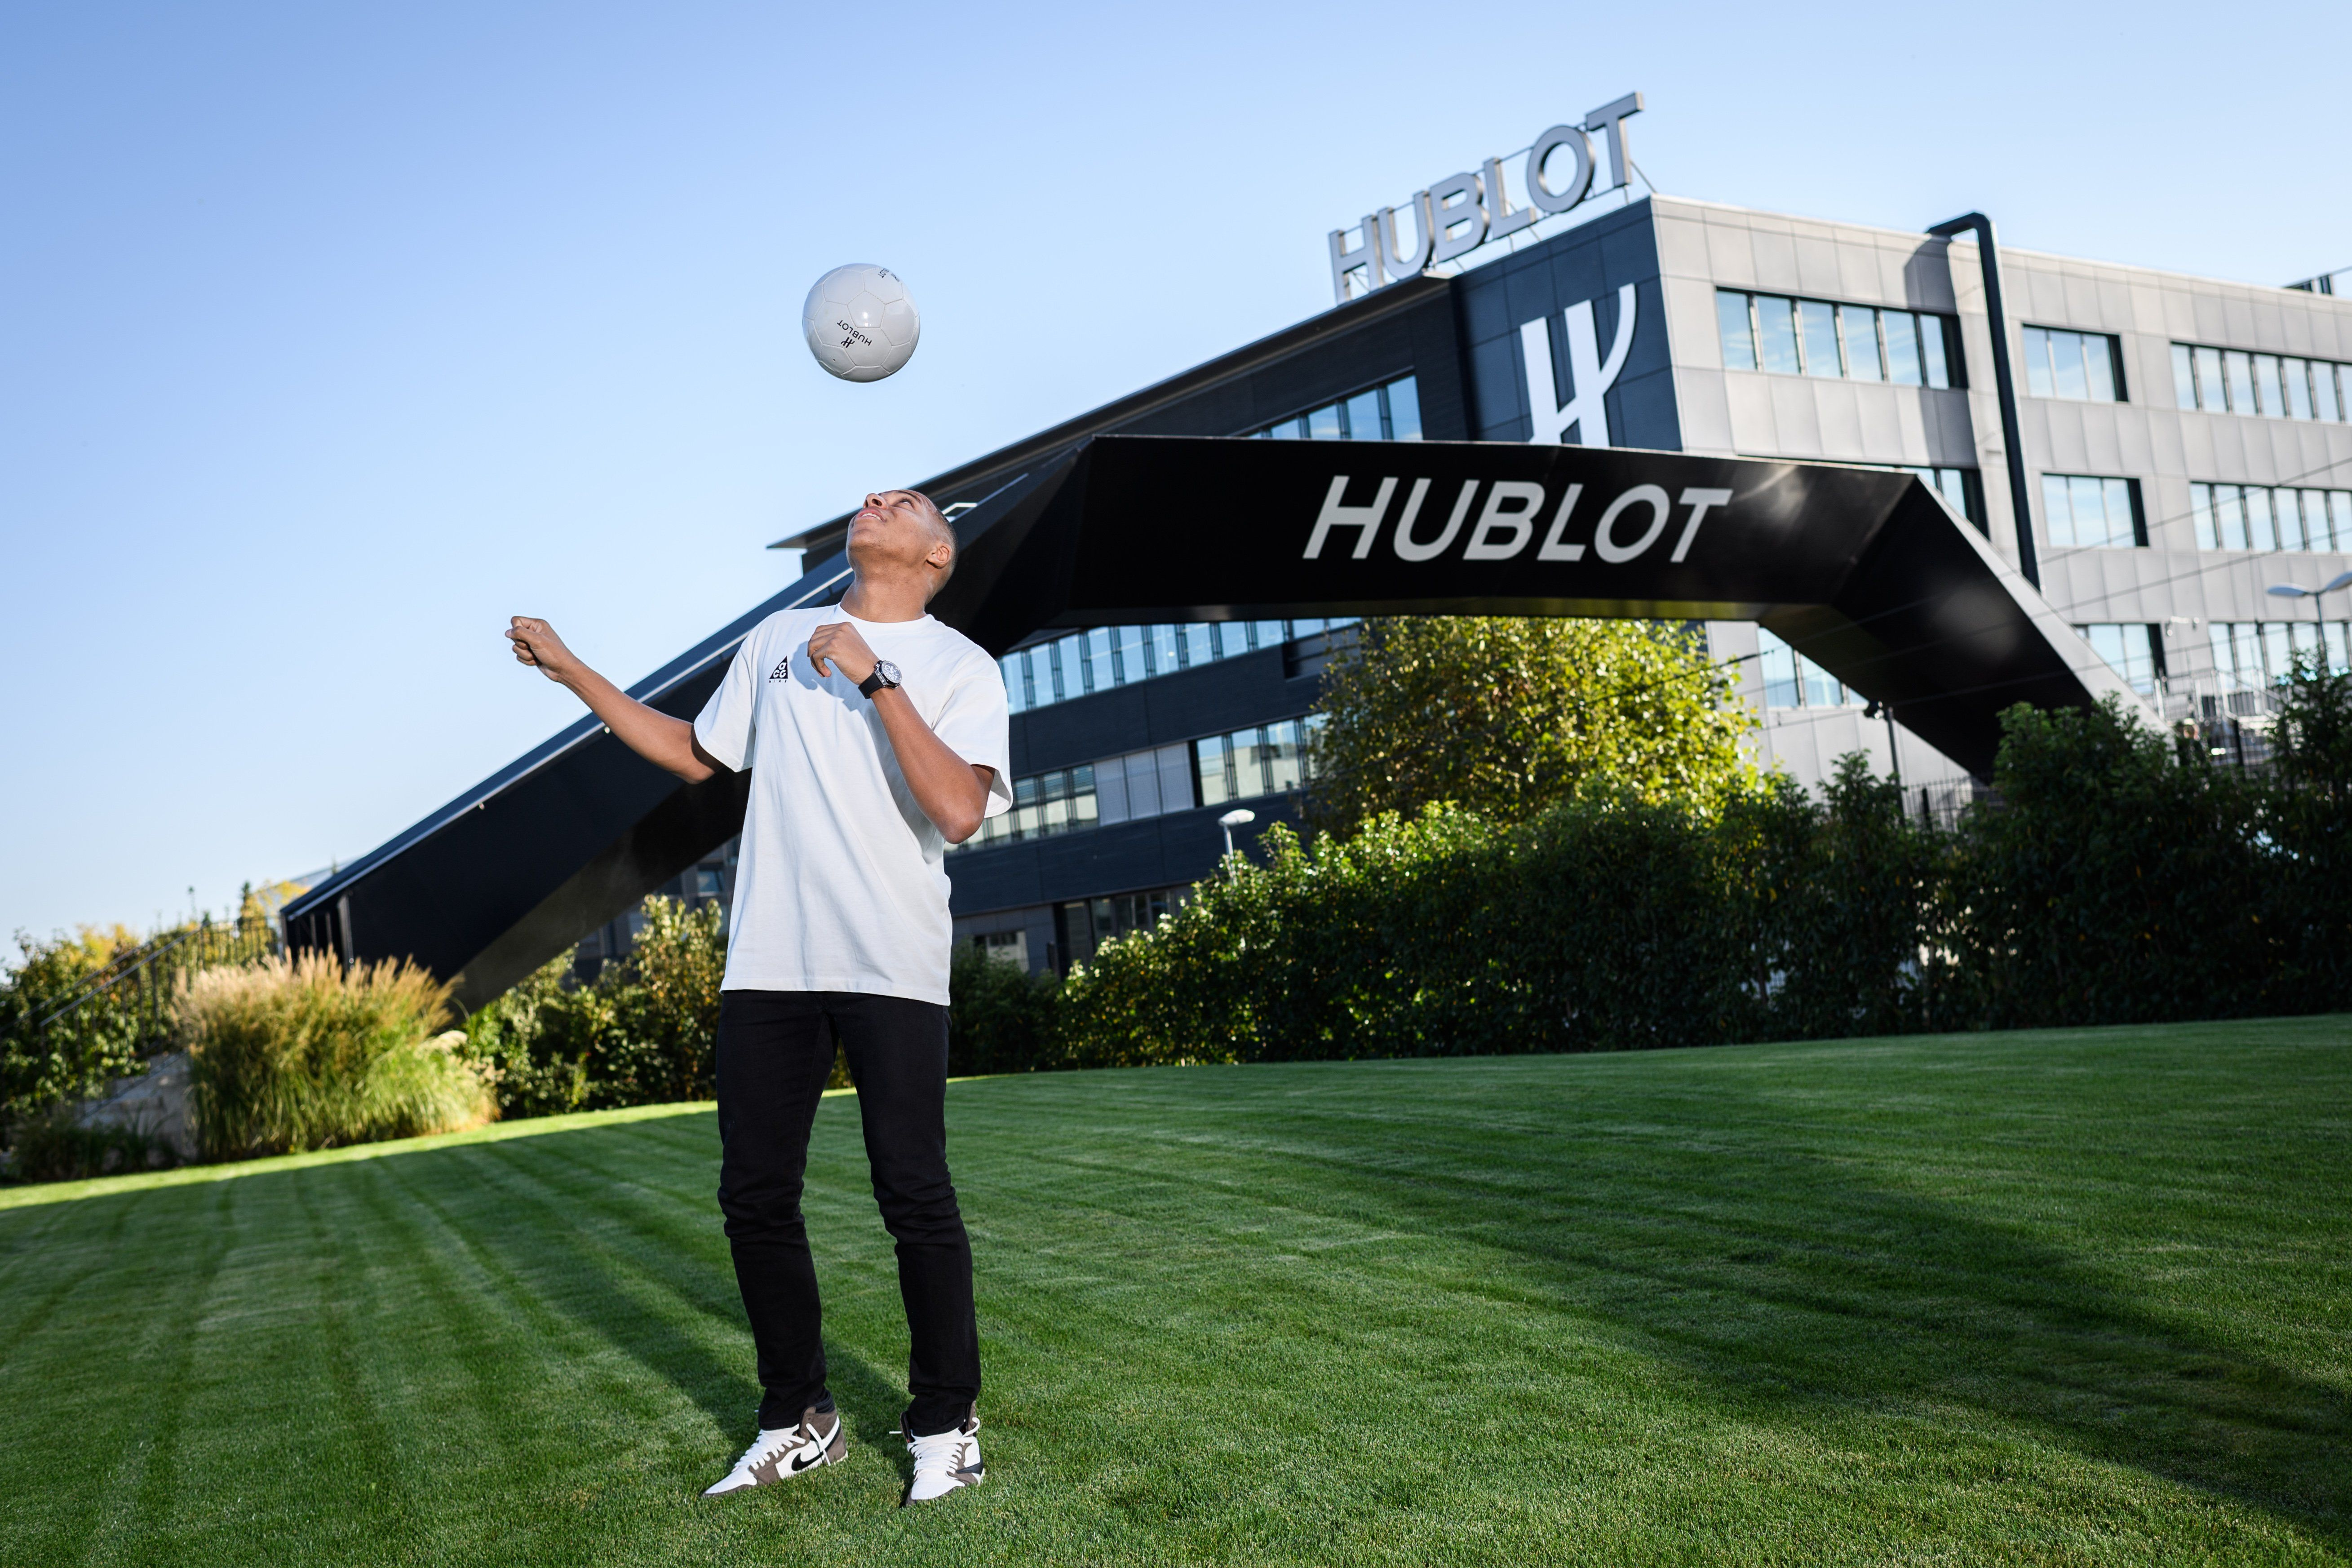 Psg S Kylian Mbappe Pays Visit To The Hublot Watch Manufacture In Nyon Hublot Psg Sport Event